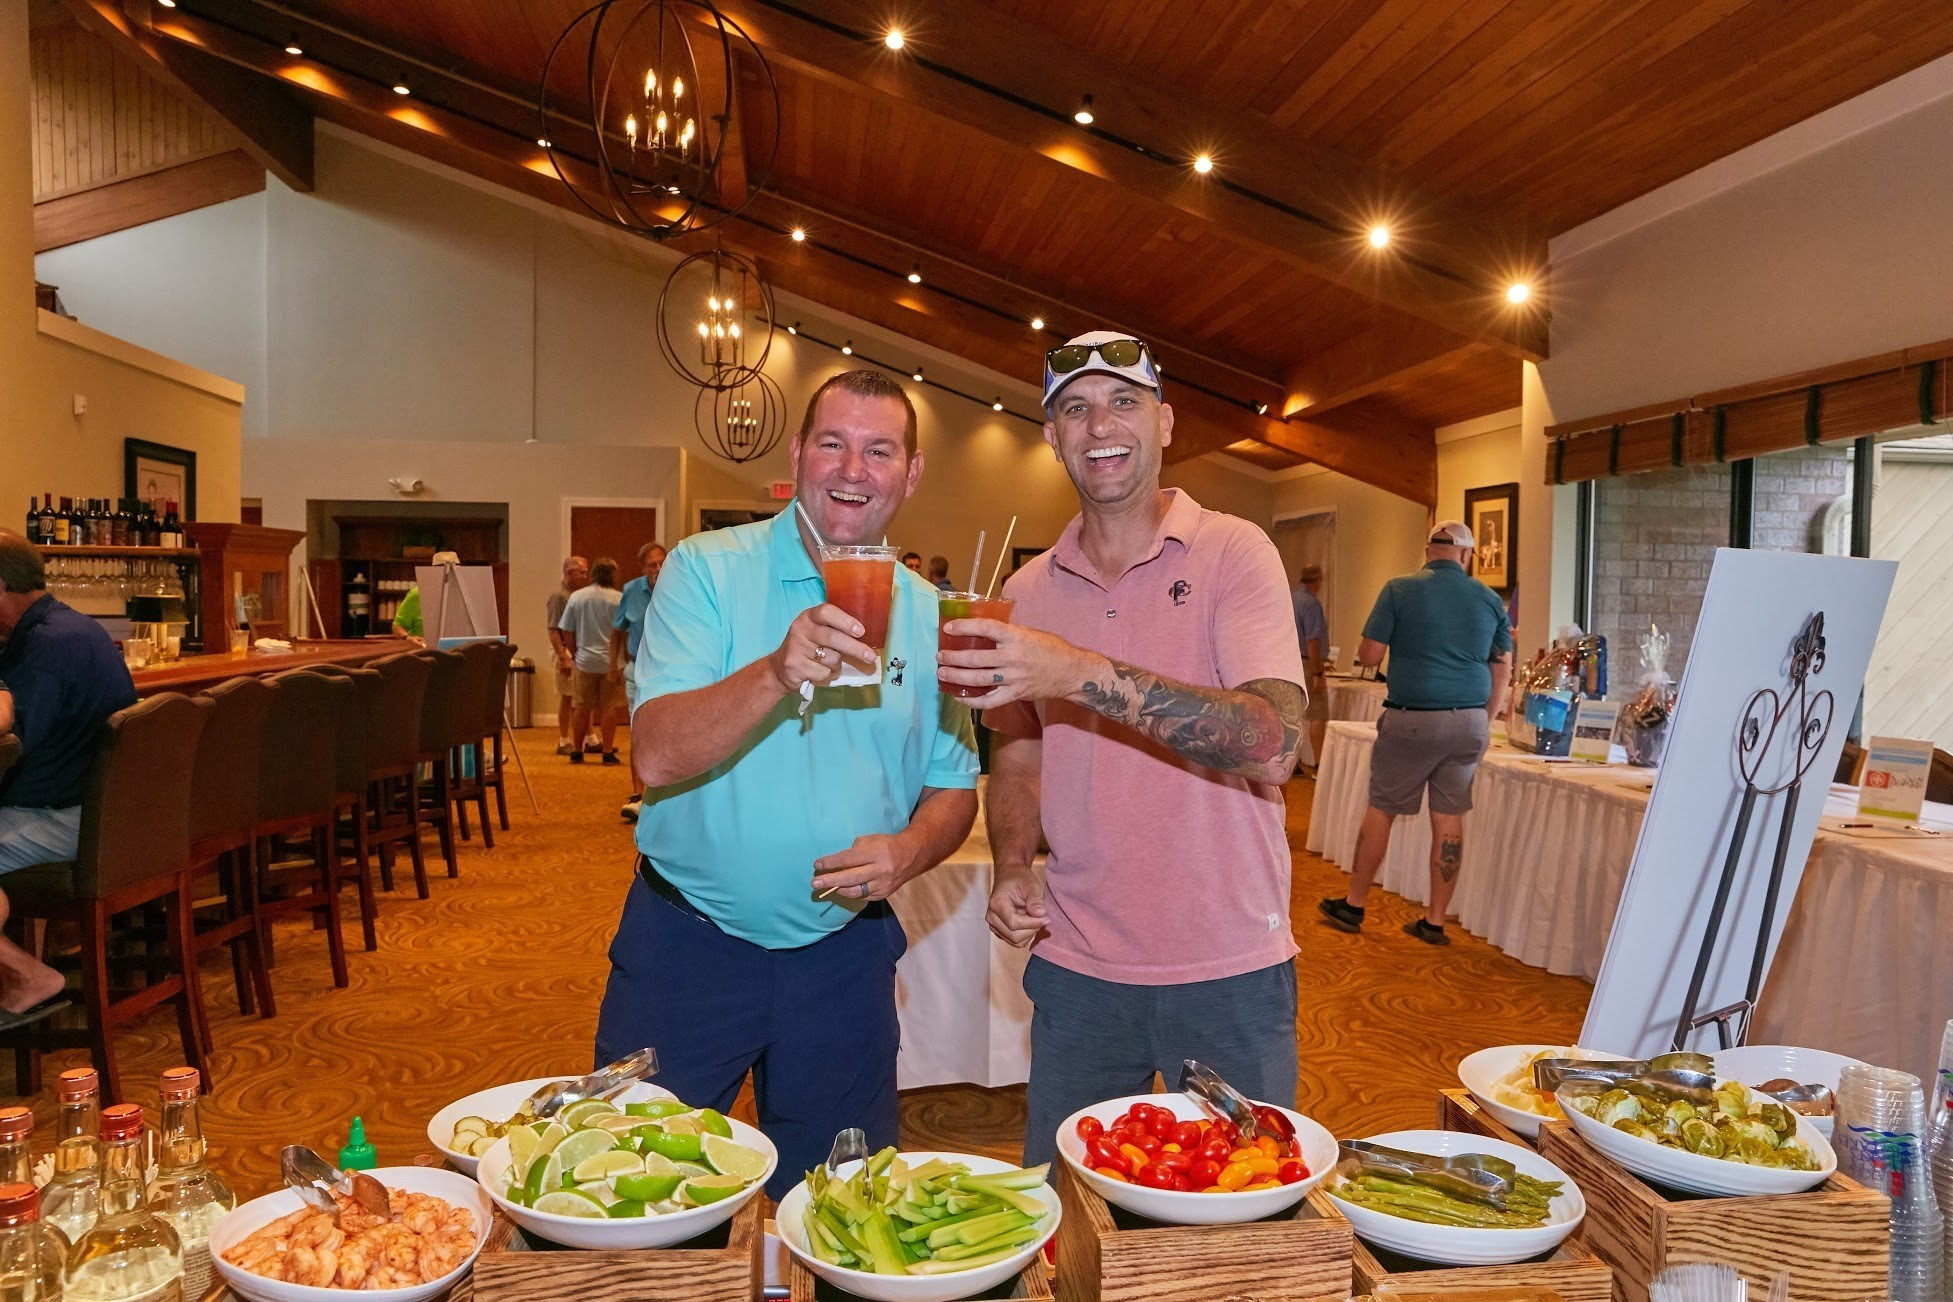 11th Annual Kroeschell Charity Golf Outing gallery image #7